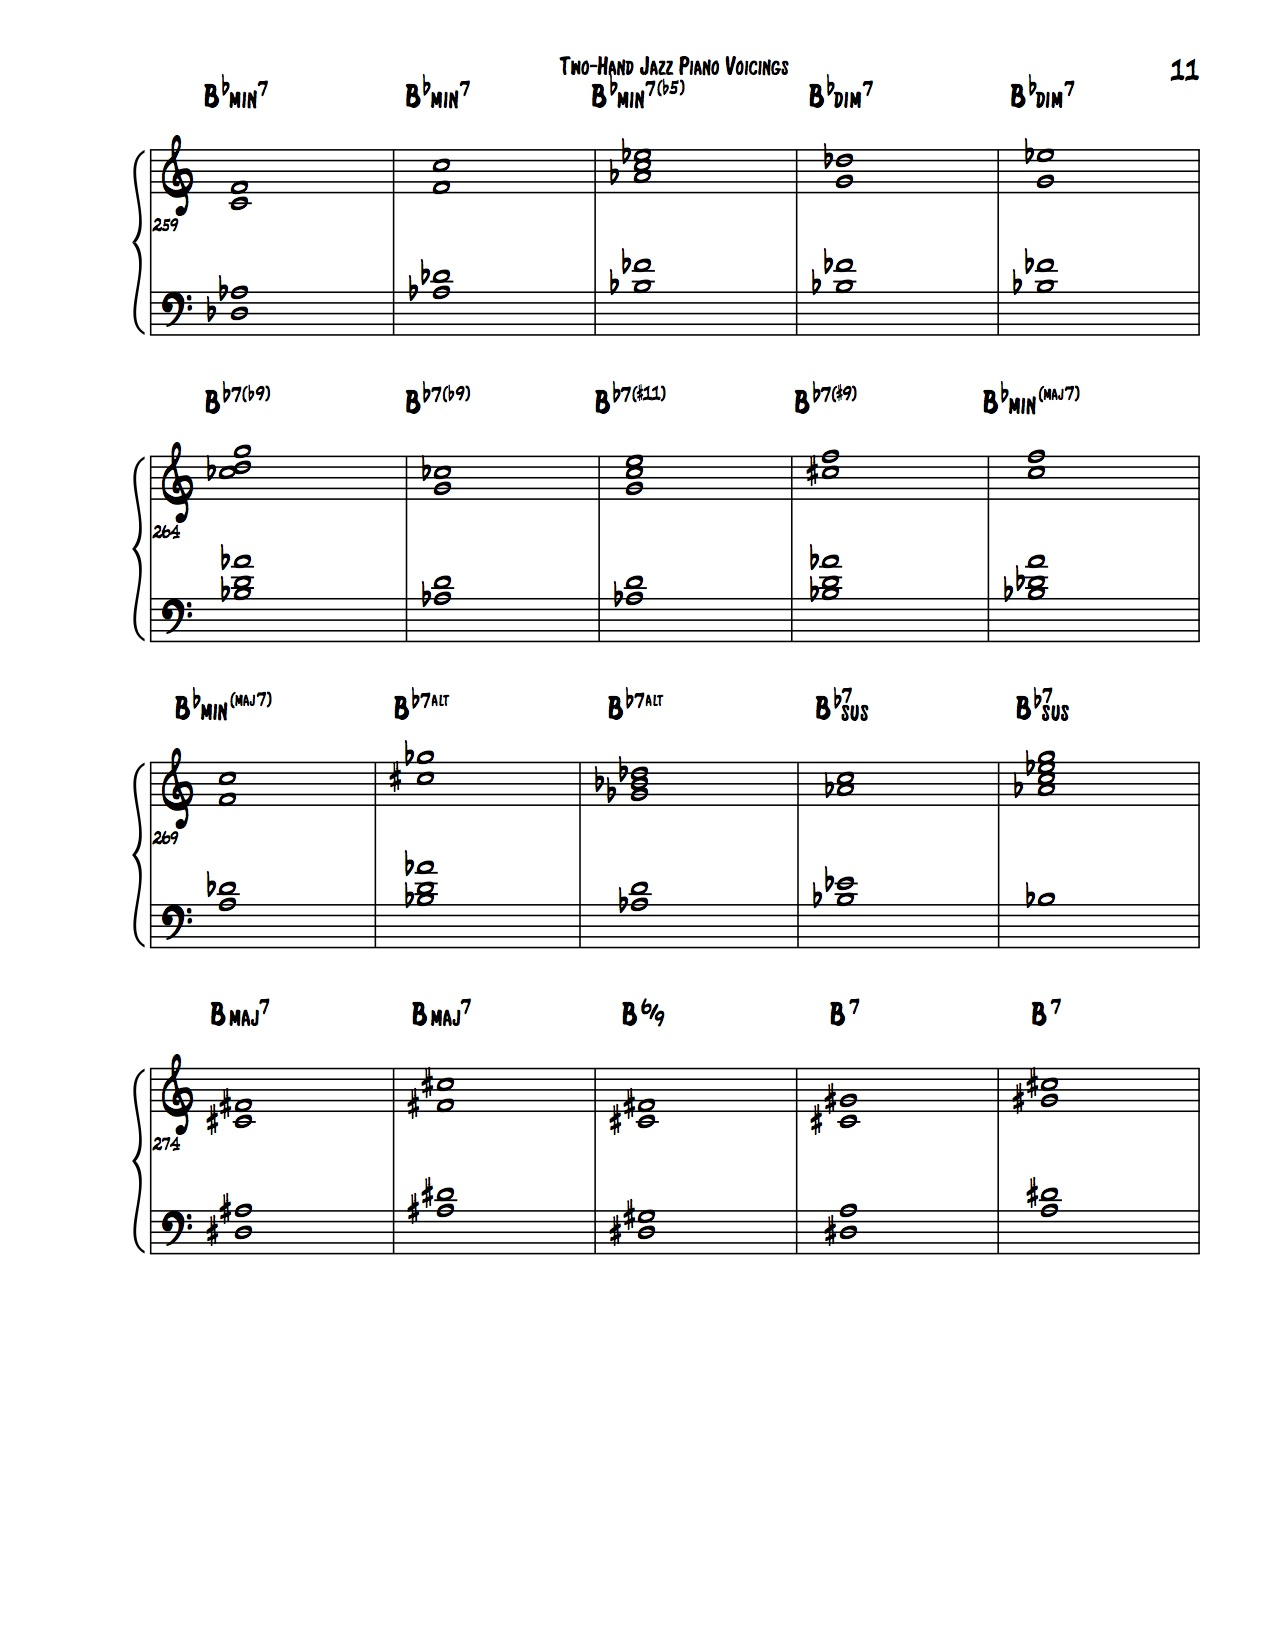 Encyclopedia of two hand jazz piano voicings learn jazz standards encyclopedia of two hand voicings 11 hexwebz Images